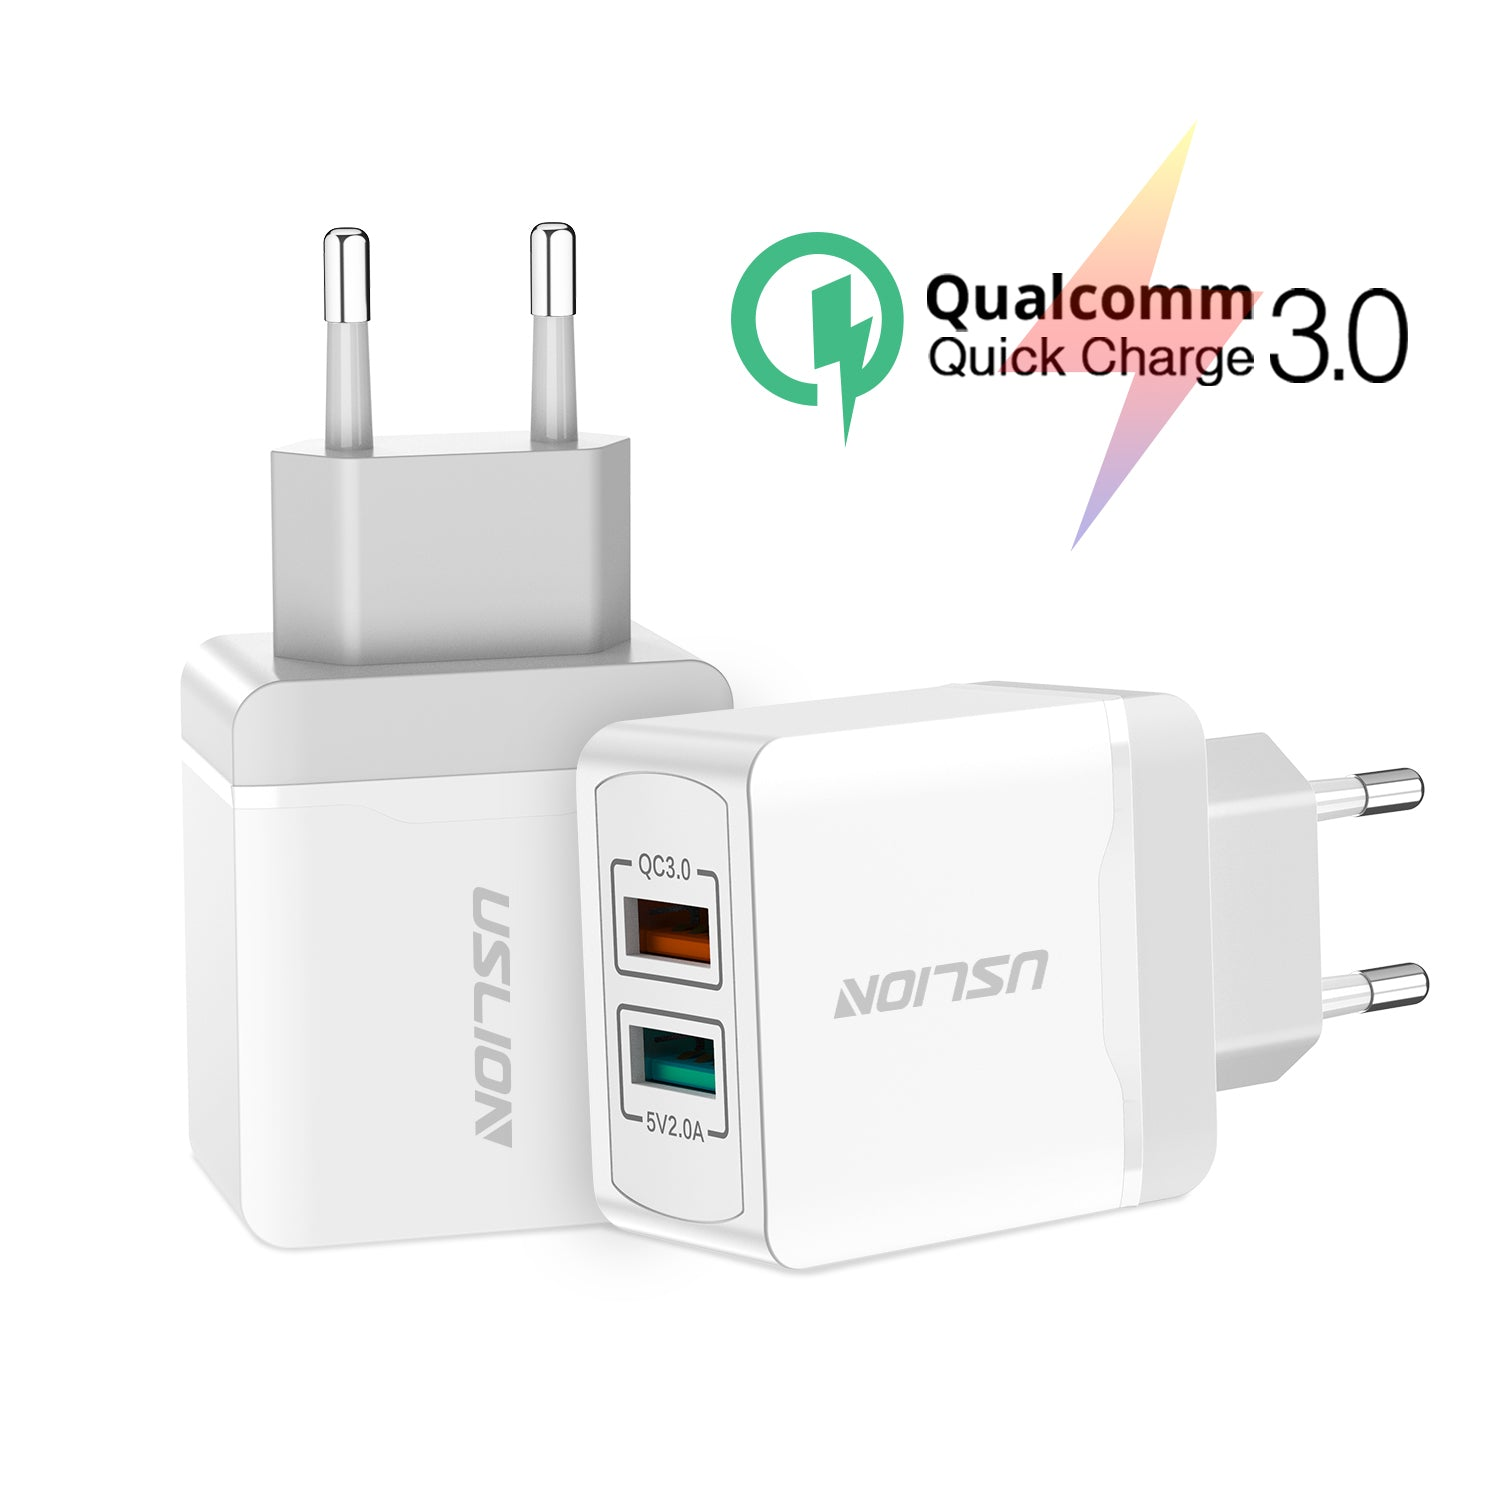 USLION QC3.0 Fast Charger Dual Port 18W Wall Charger